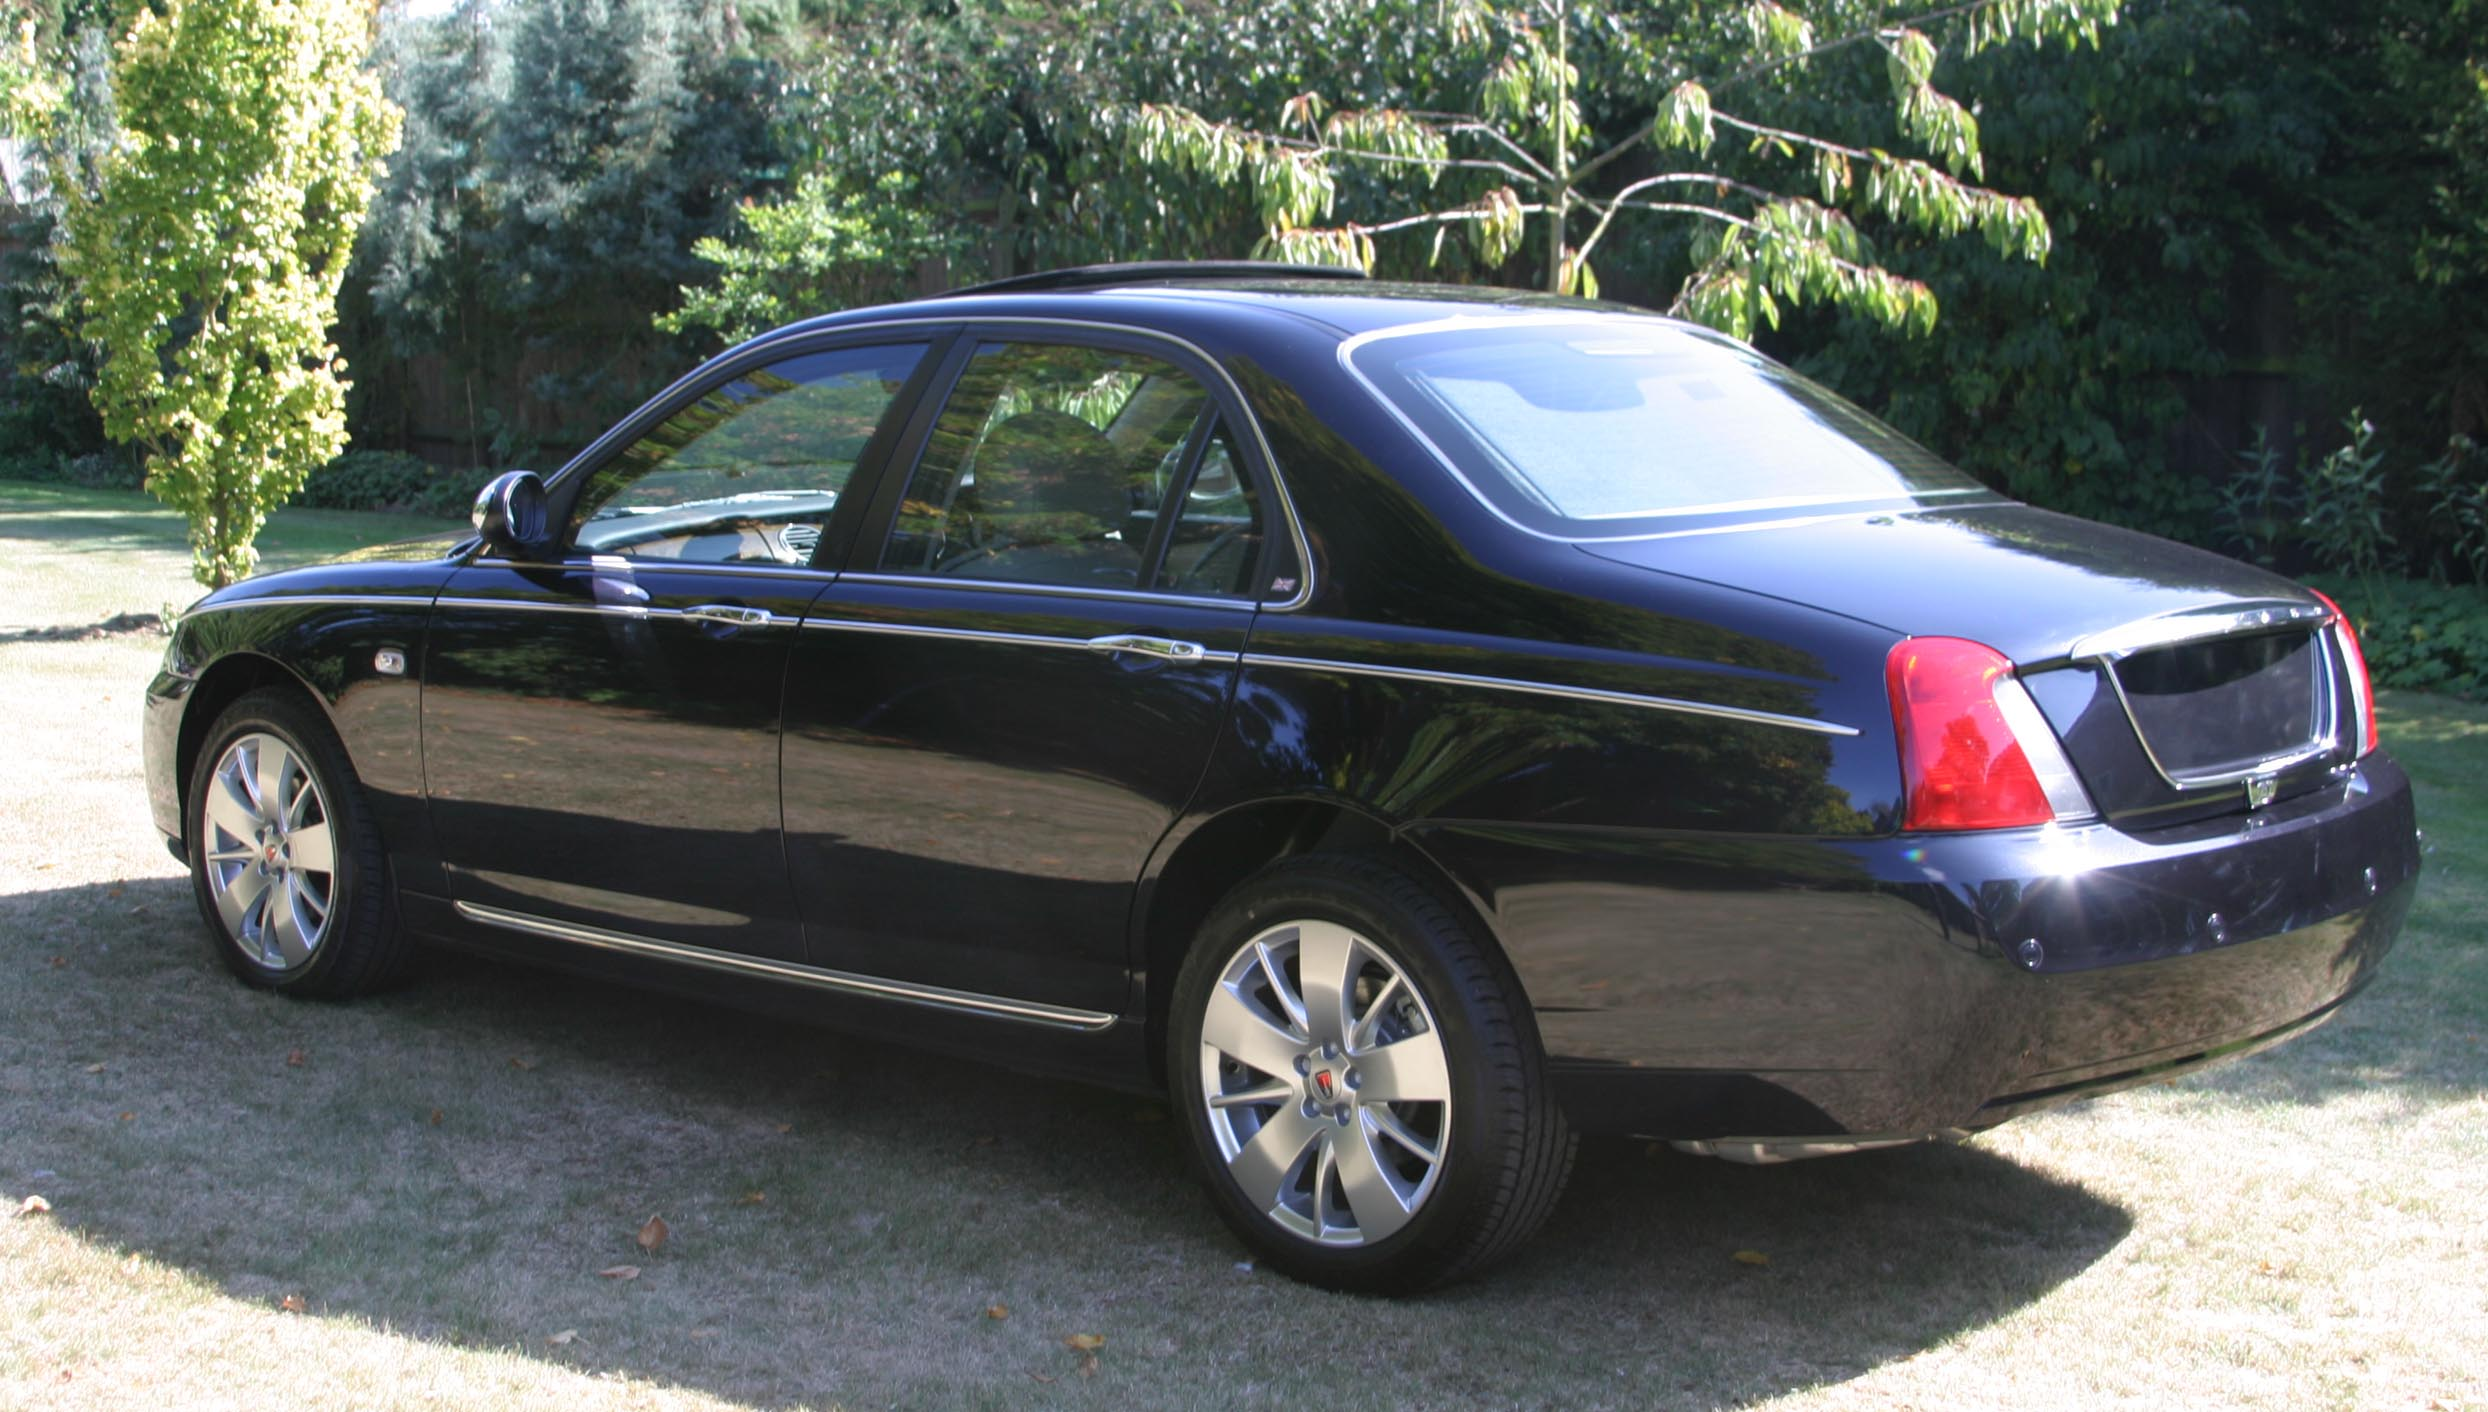 ROVER 75 - Review and photos